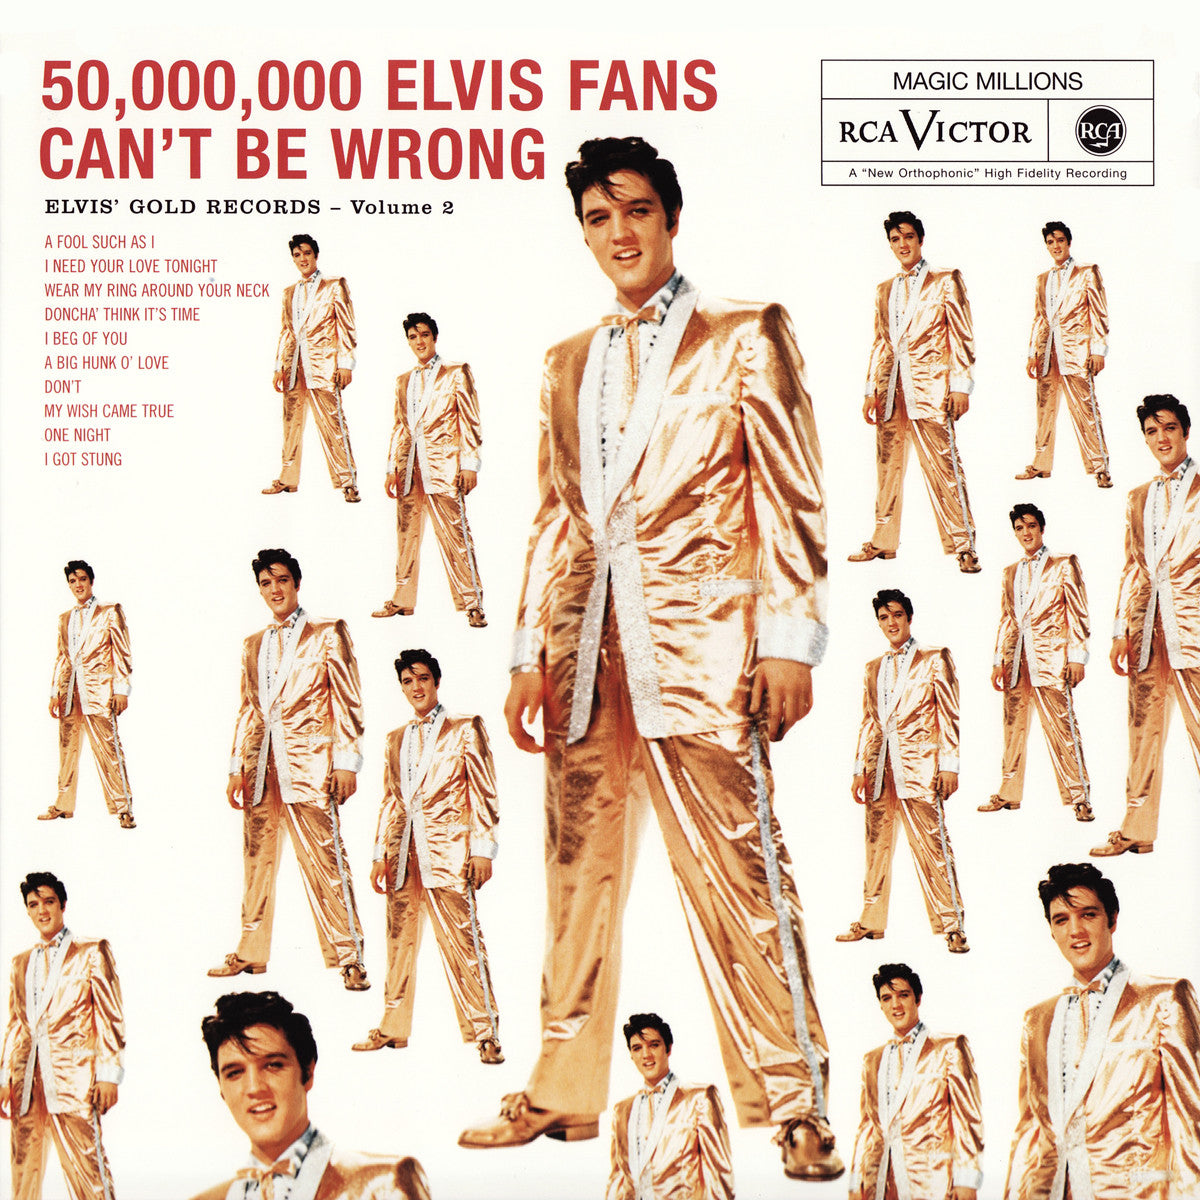 ELVIS PRESLEY - 50,000,000 ELVIS FANS CAN'T BE WRONG(GOLDEN RECORDS VOL. 2) LP